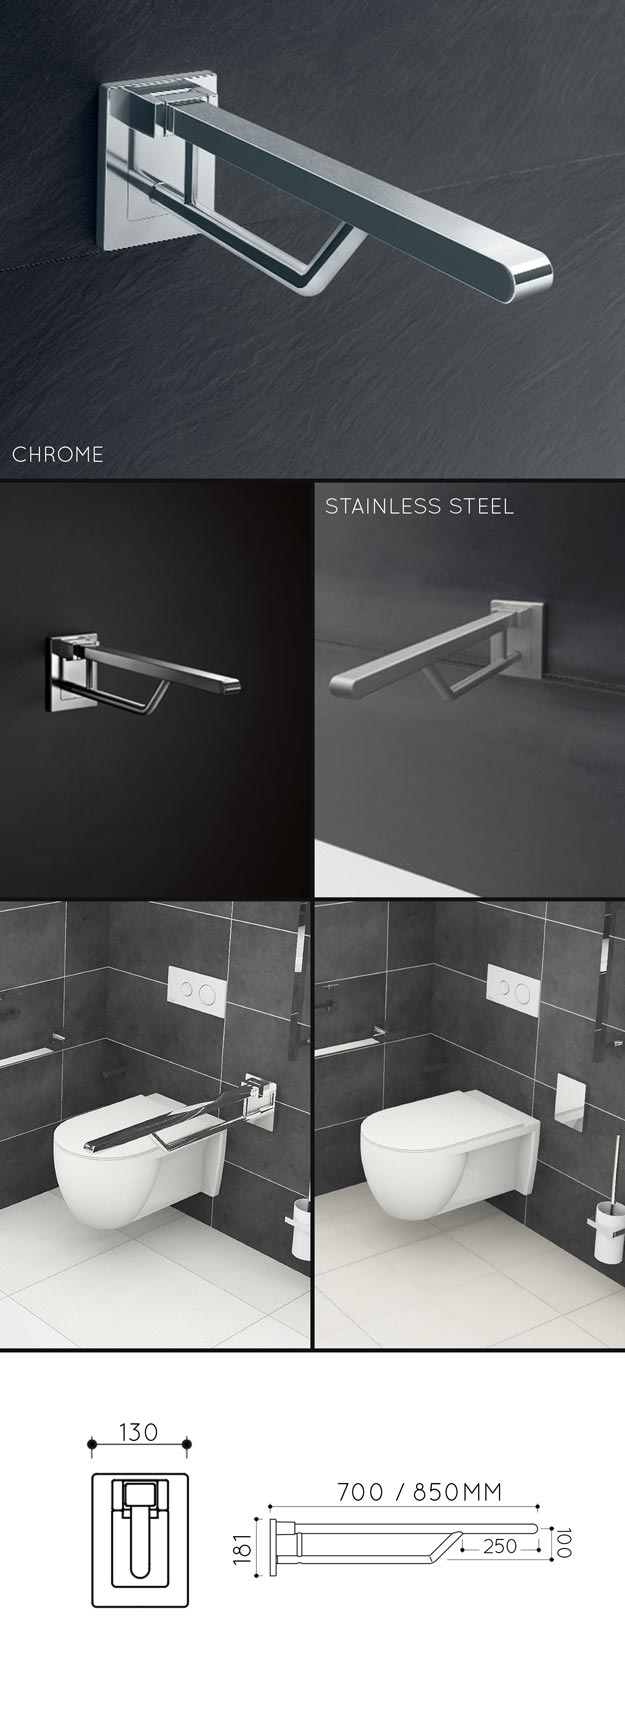 Folding Toilet Grab Bar & Removable Disabled Support Rails